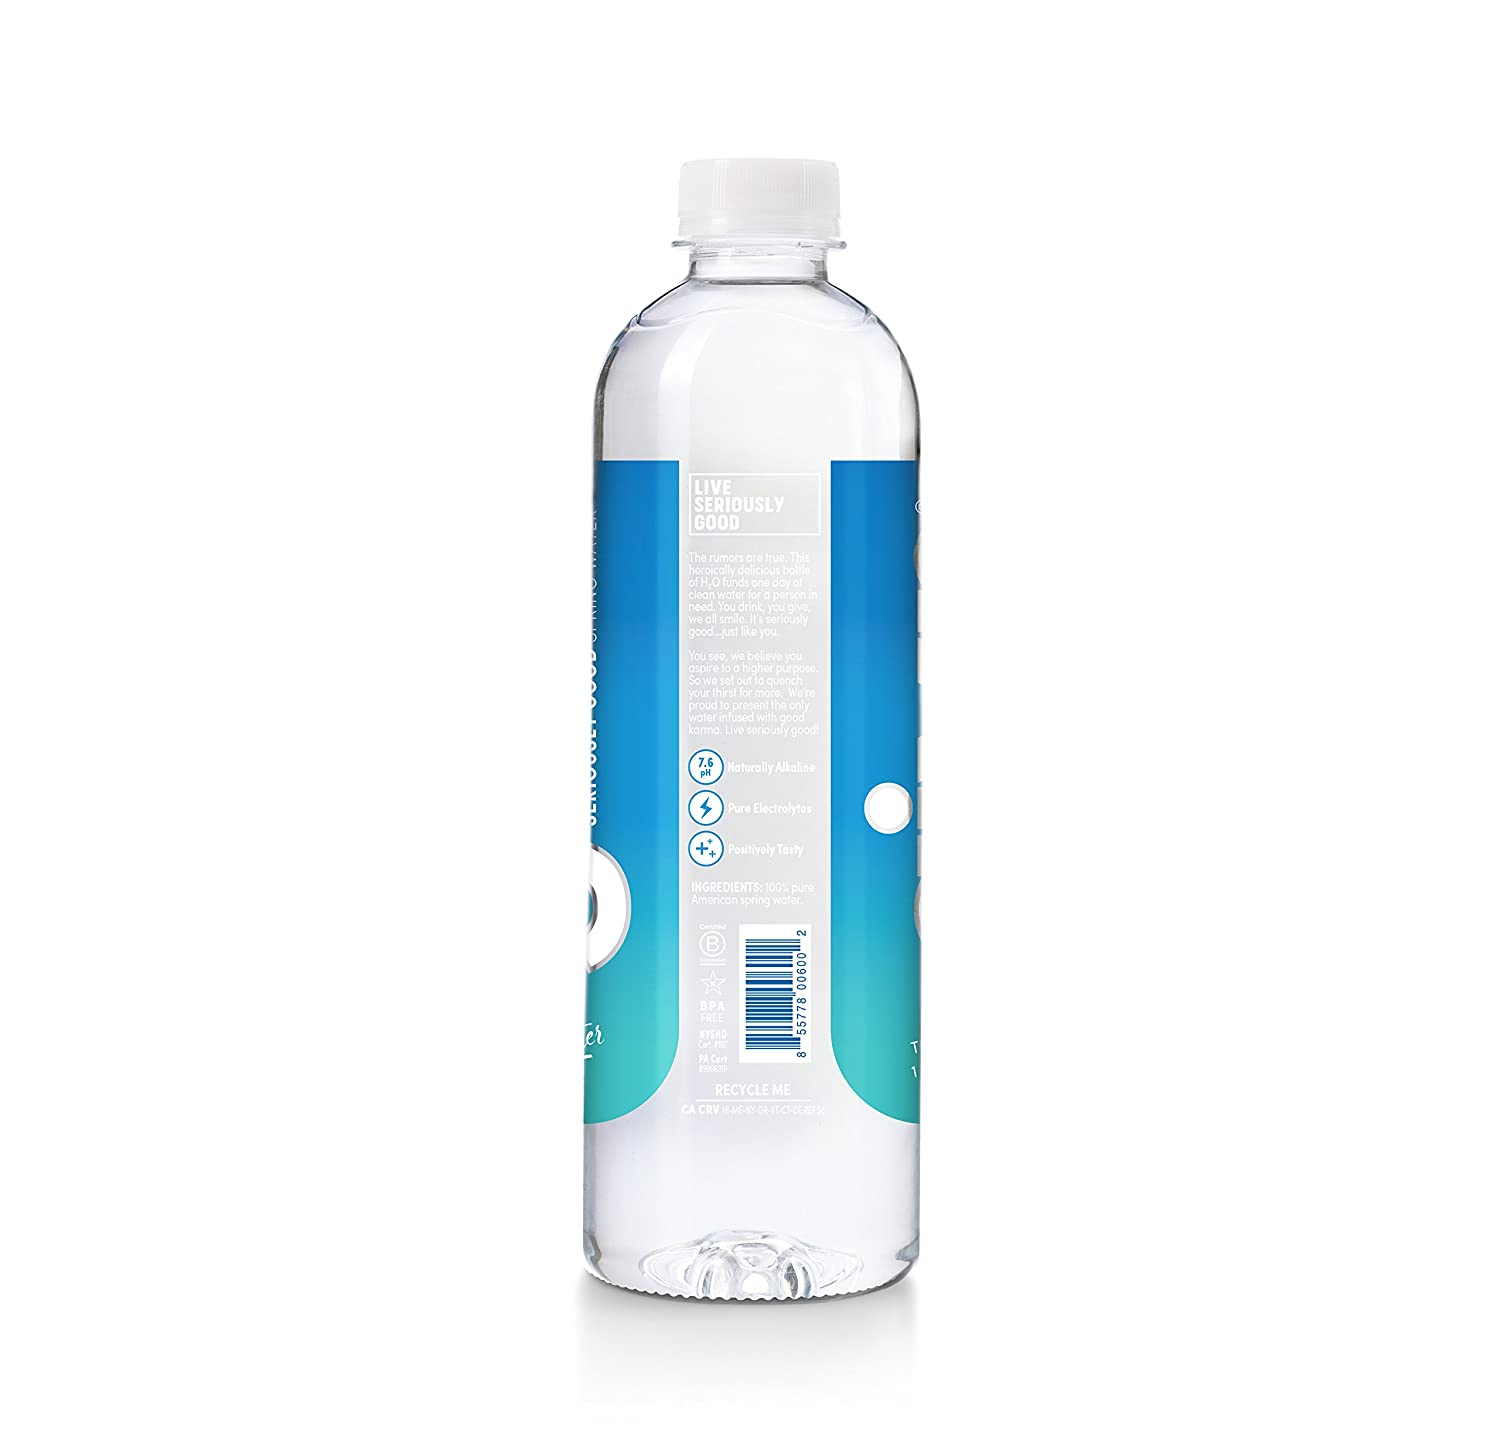 7b0539361f Amazon.com : GIVN Water - Seriously Good! : Grocery & Gourmet Food